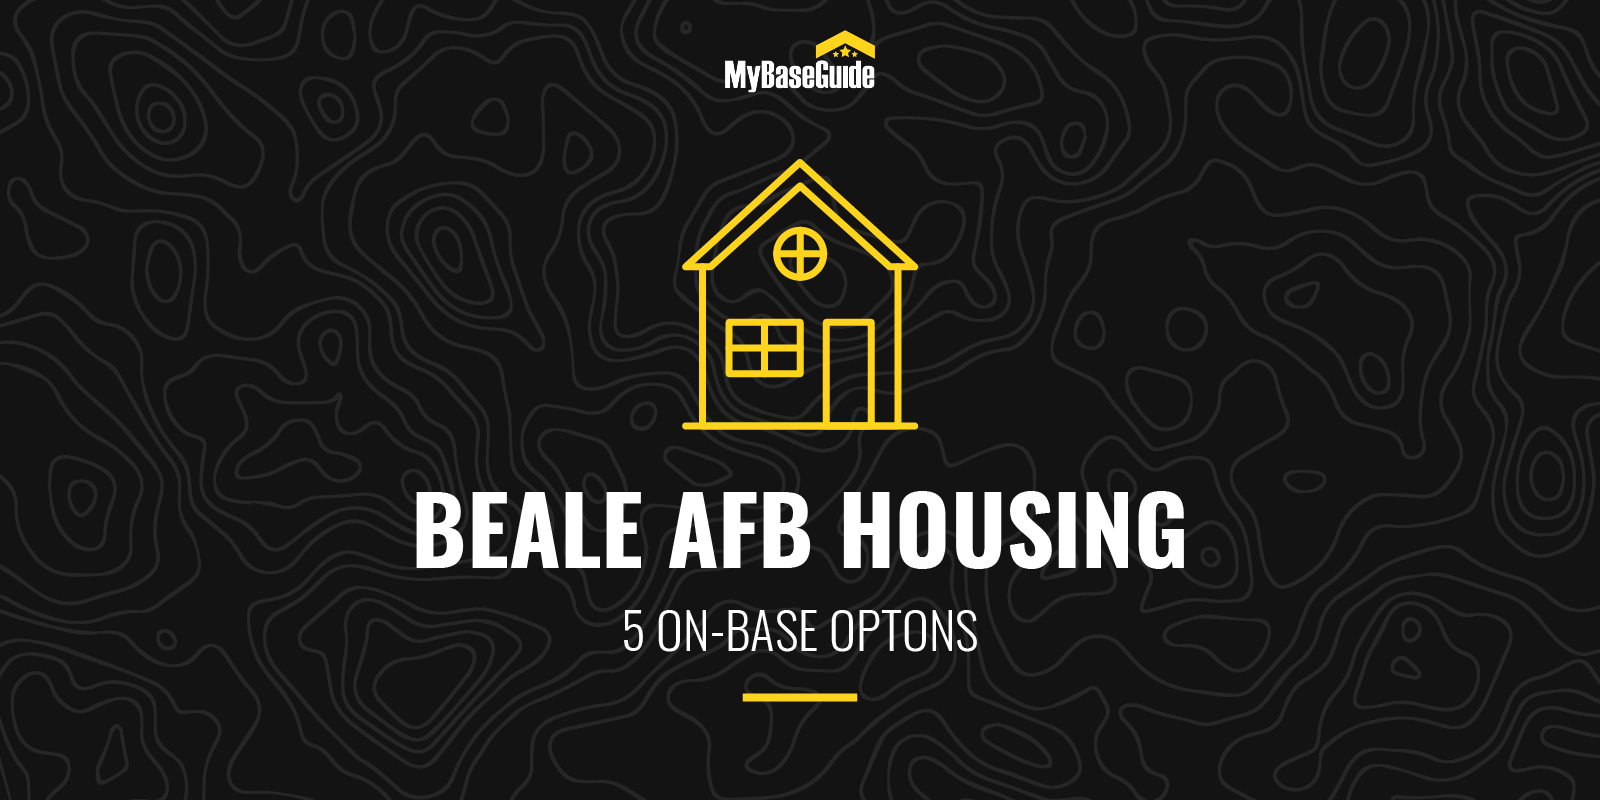 Beale AFB Housing: 5 On-Base Options